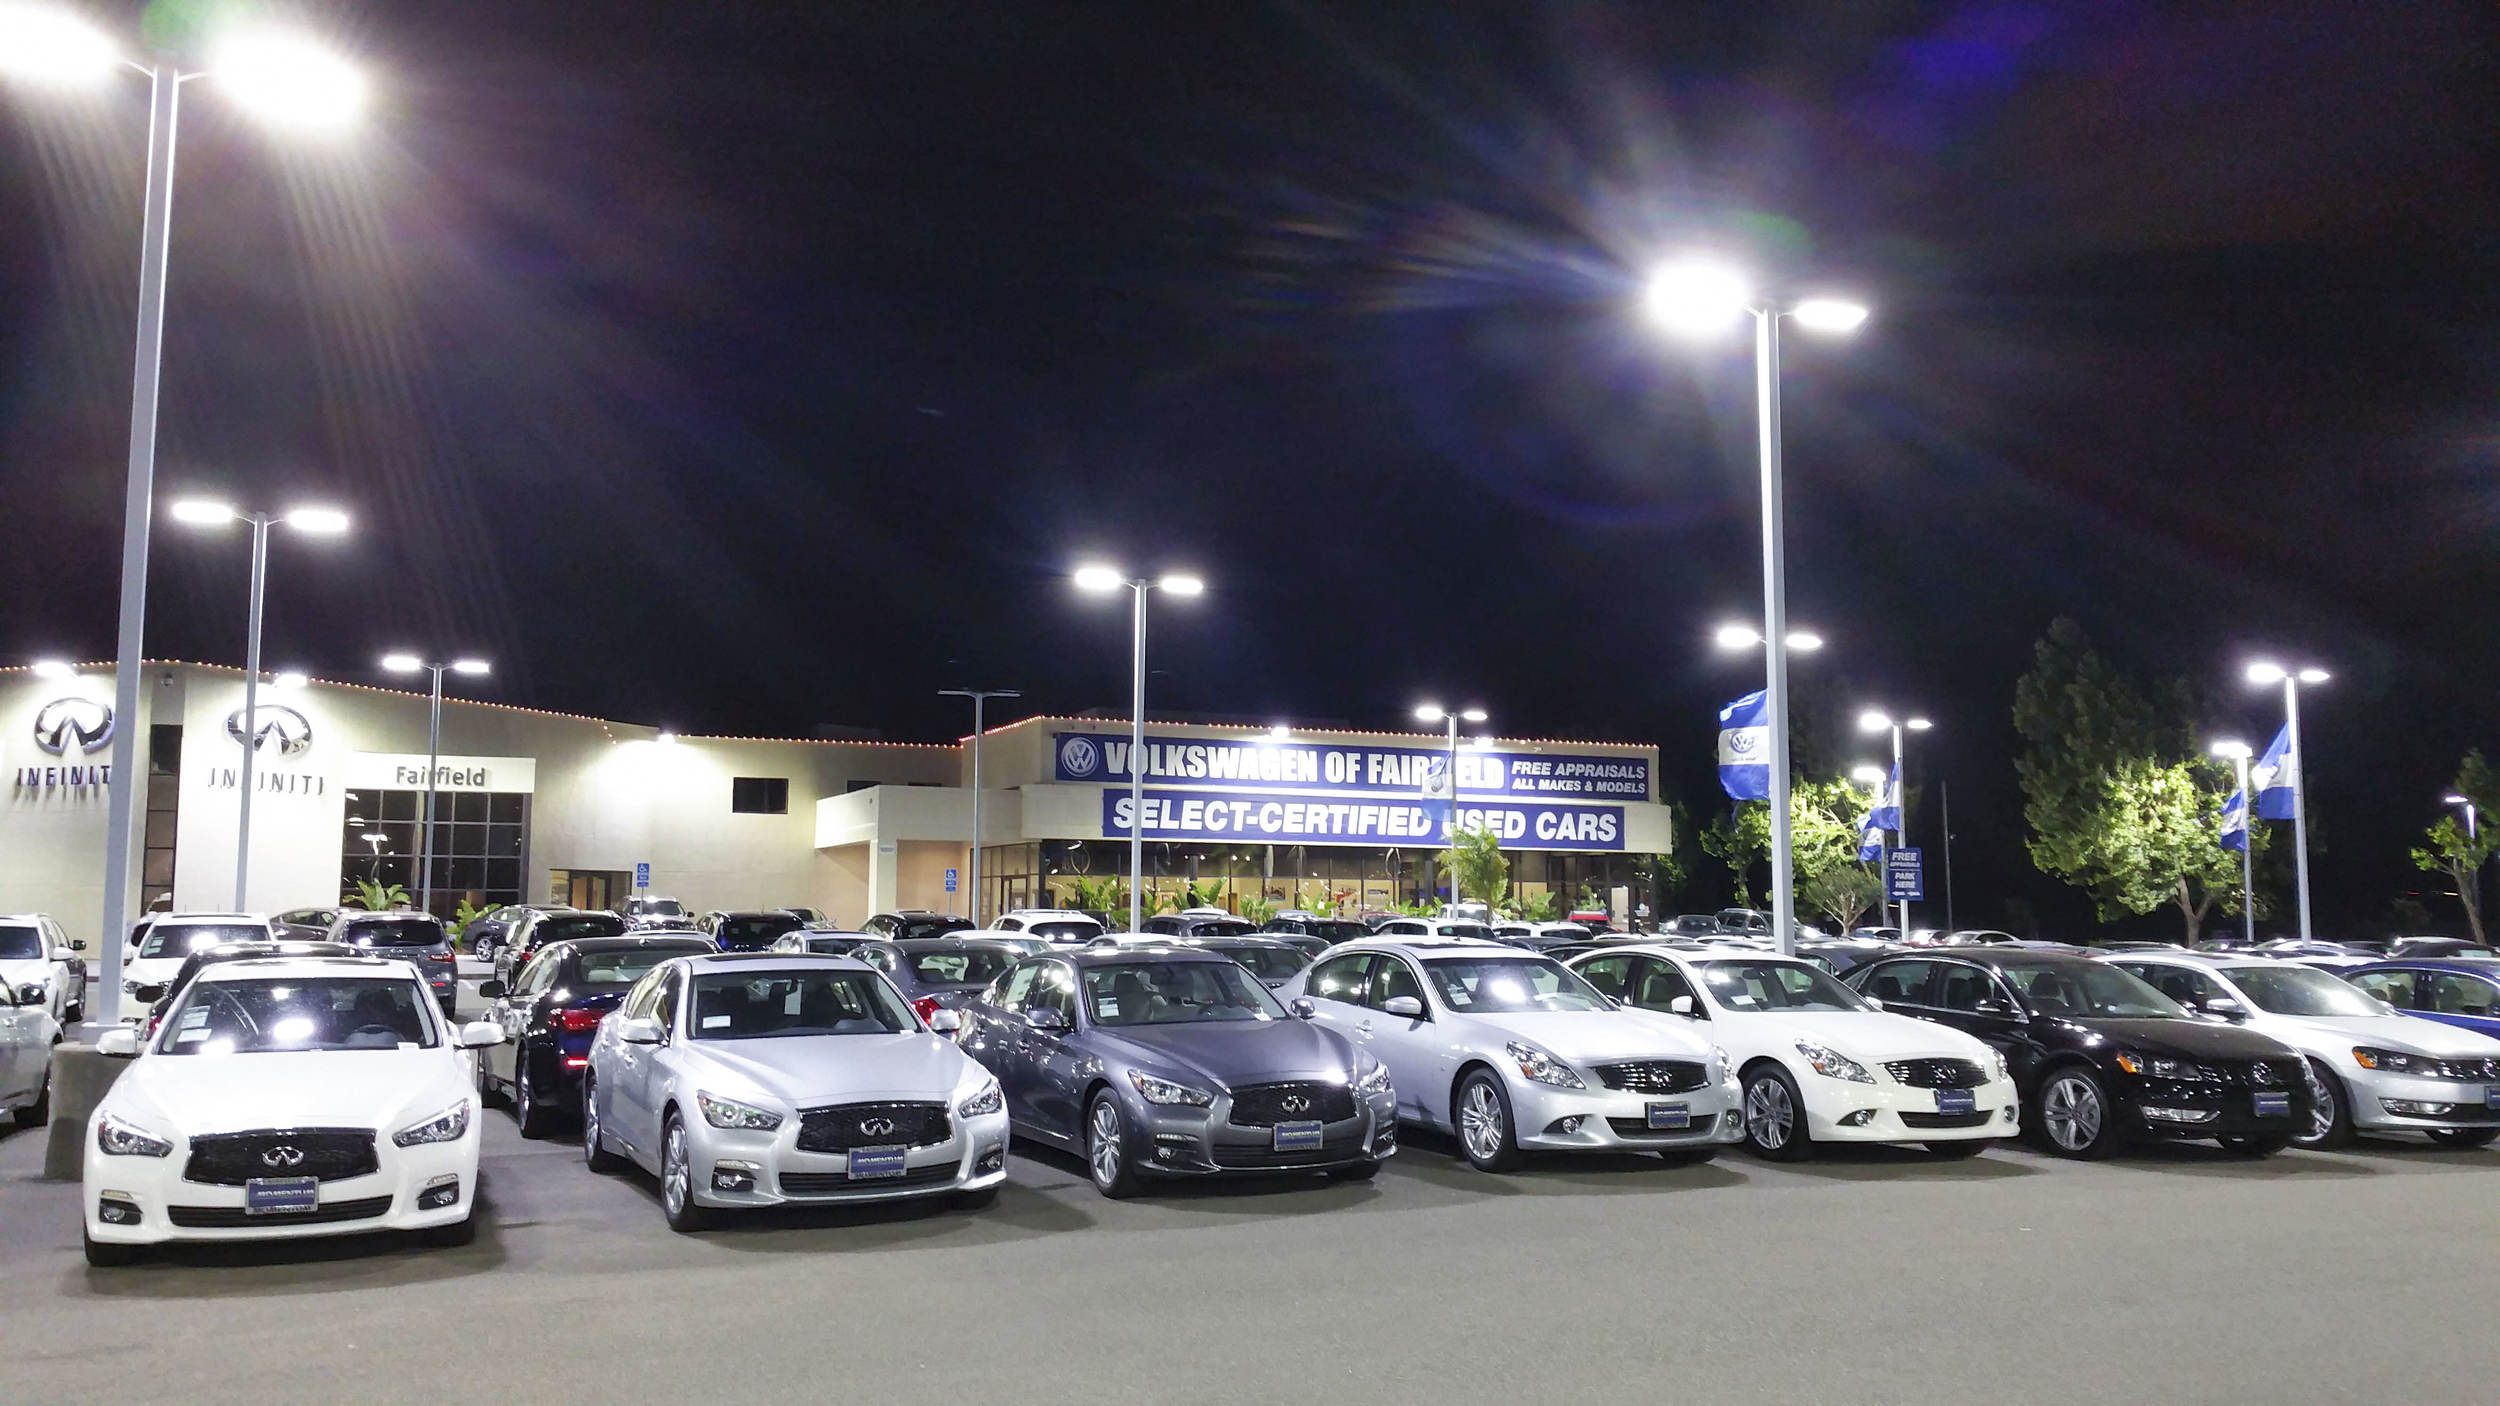 Awaken LED Lighting - Qx8Ho - Car Dealership - Infiniti / Volkswagen 2